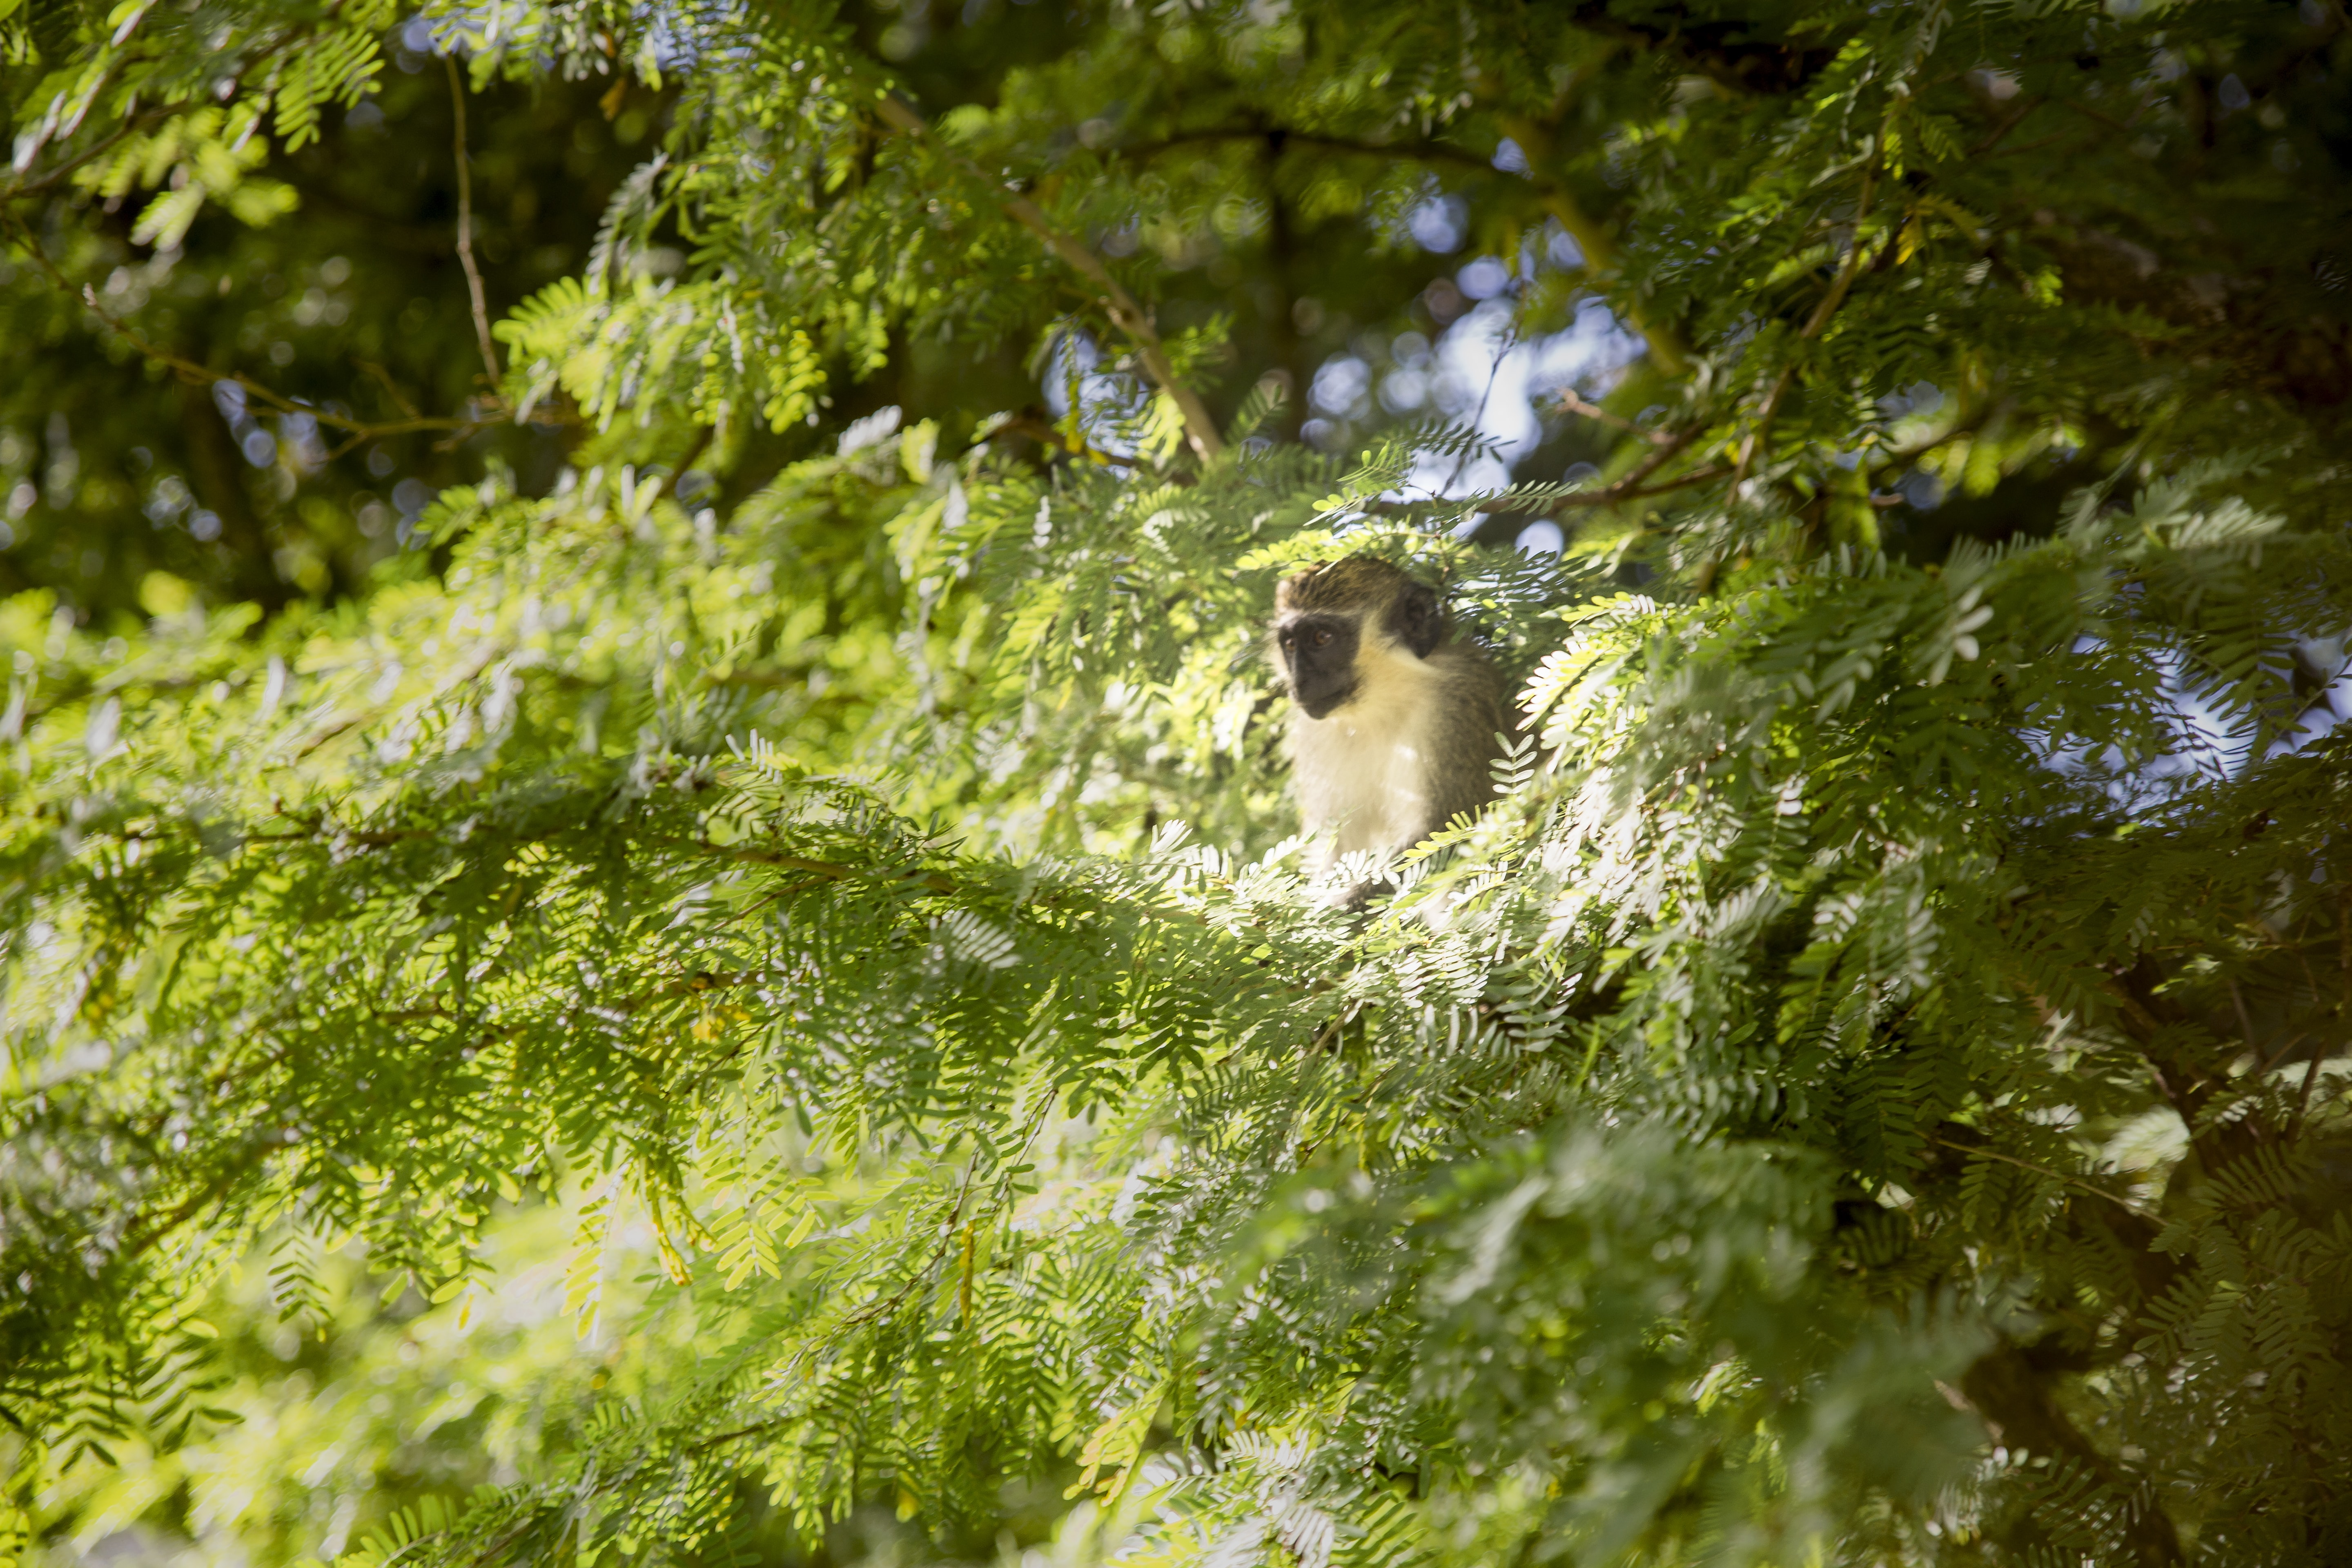 brown monkey on tree during day time